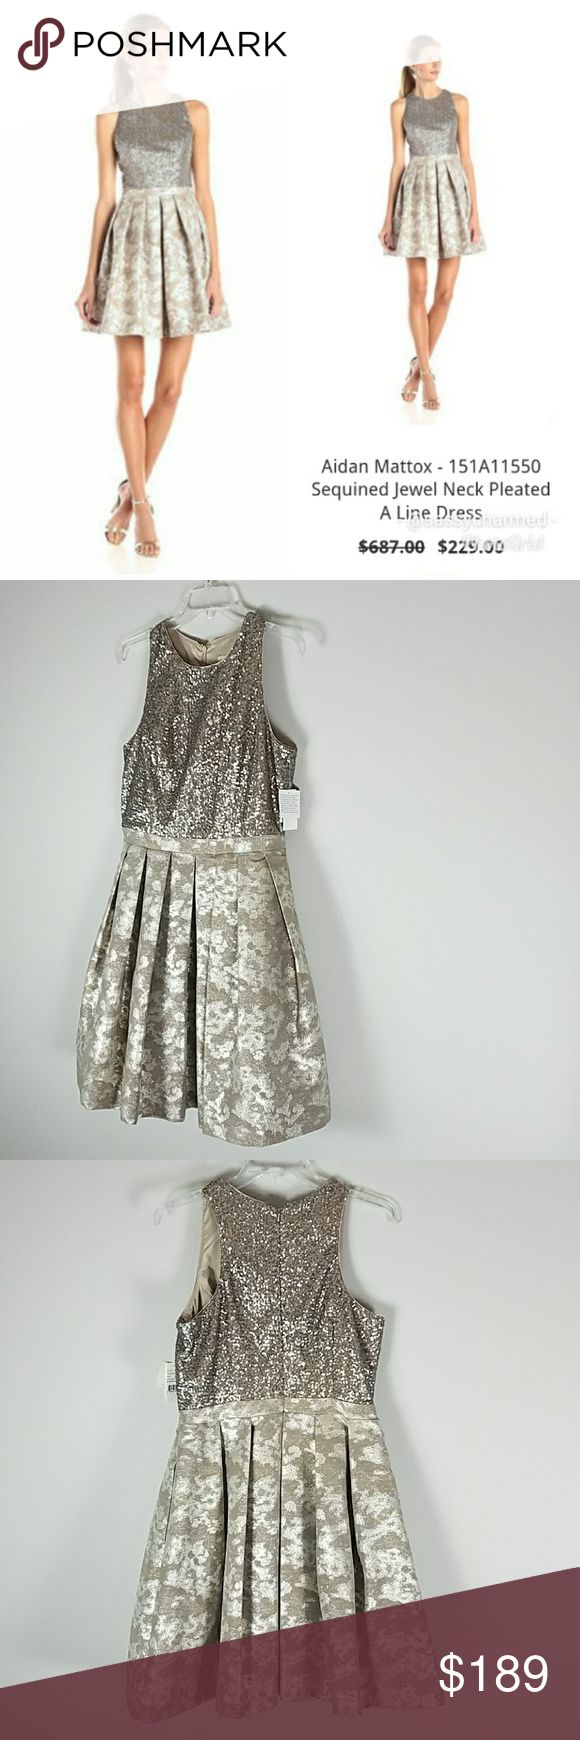 NWT Aidan Mattox Metallic Sequin Dress w/ Pockets Aidan Mattox Pleated Metallic Sequin A-line Dress with Pockets. Sleeveless/halter style with zipper in back & petticoat & lining. Stunning! Approx Measurements in inches with garment laying flat: chest 18, waist 15.5, length 37.5. Aidan Mattox Dresses Prom